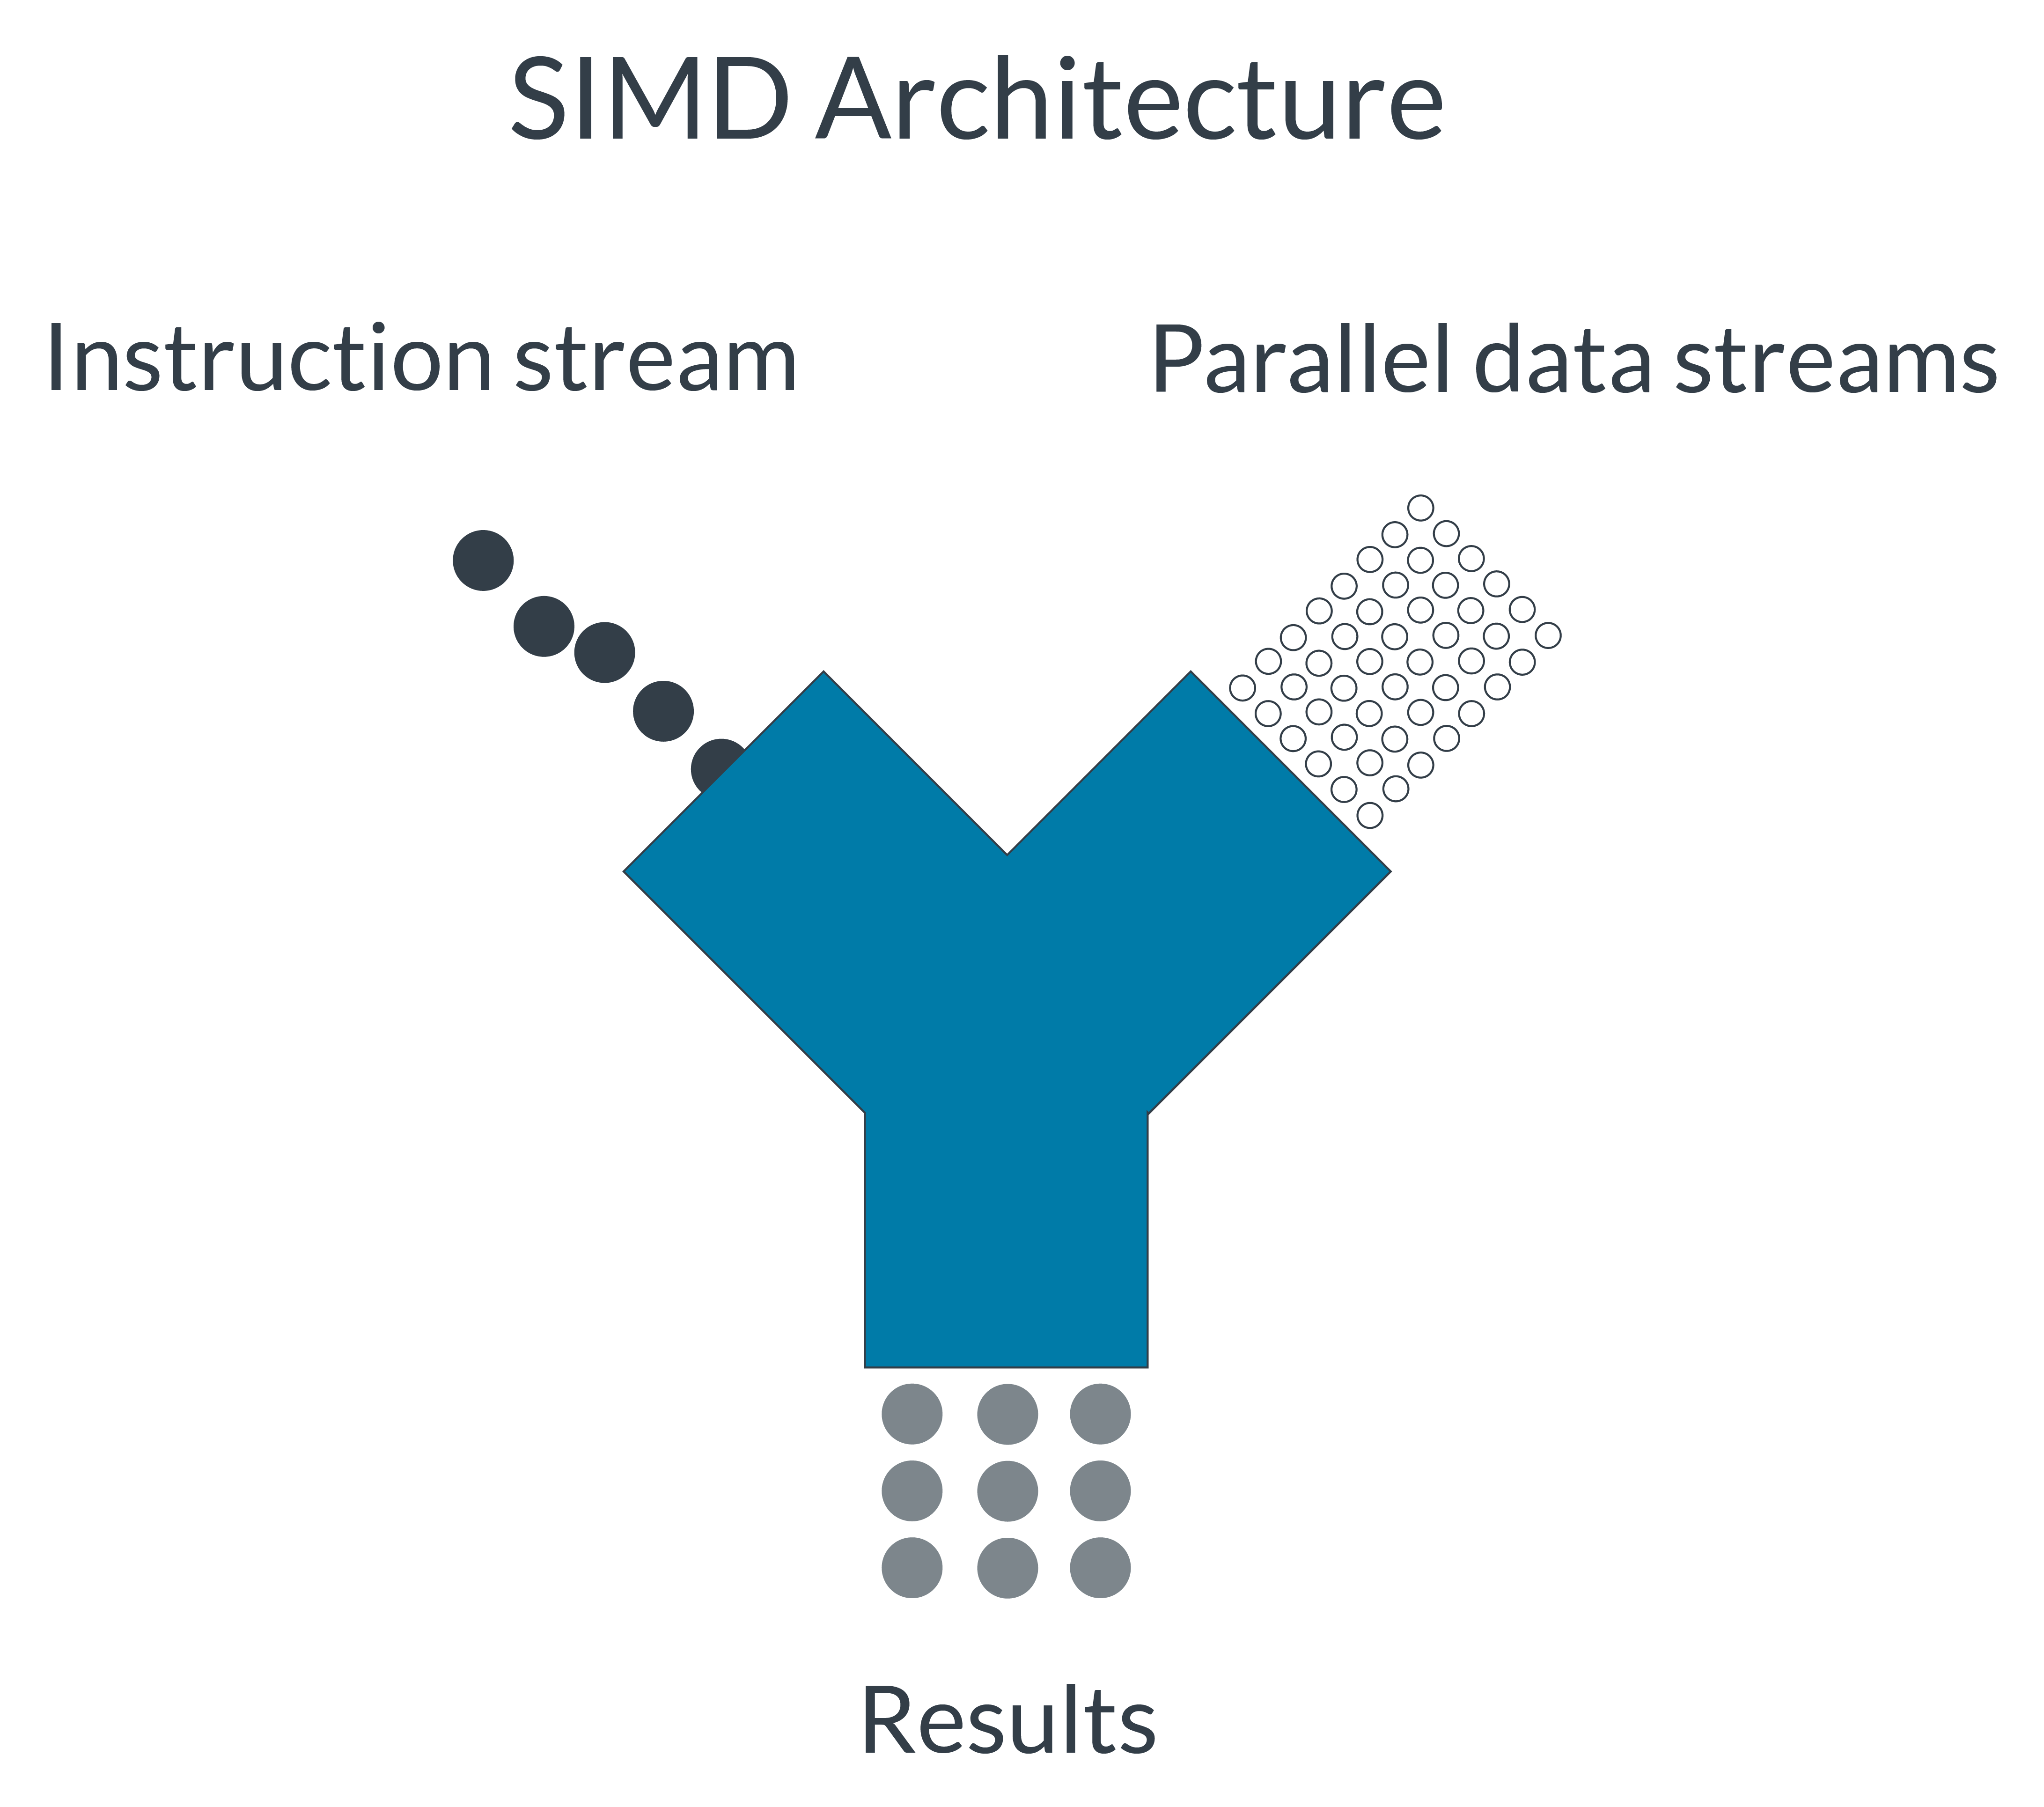 fined grained simd architecture Graphql was also released into a world moving quickly towards fine-grained microservices as a result, most graphql server-side implementations are thin integration layers over rest apis or microservices that require minimal changes to existing backend architectures.